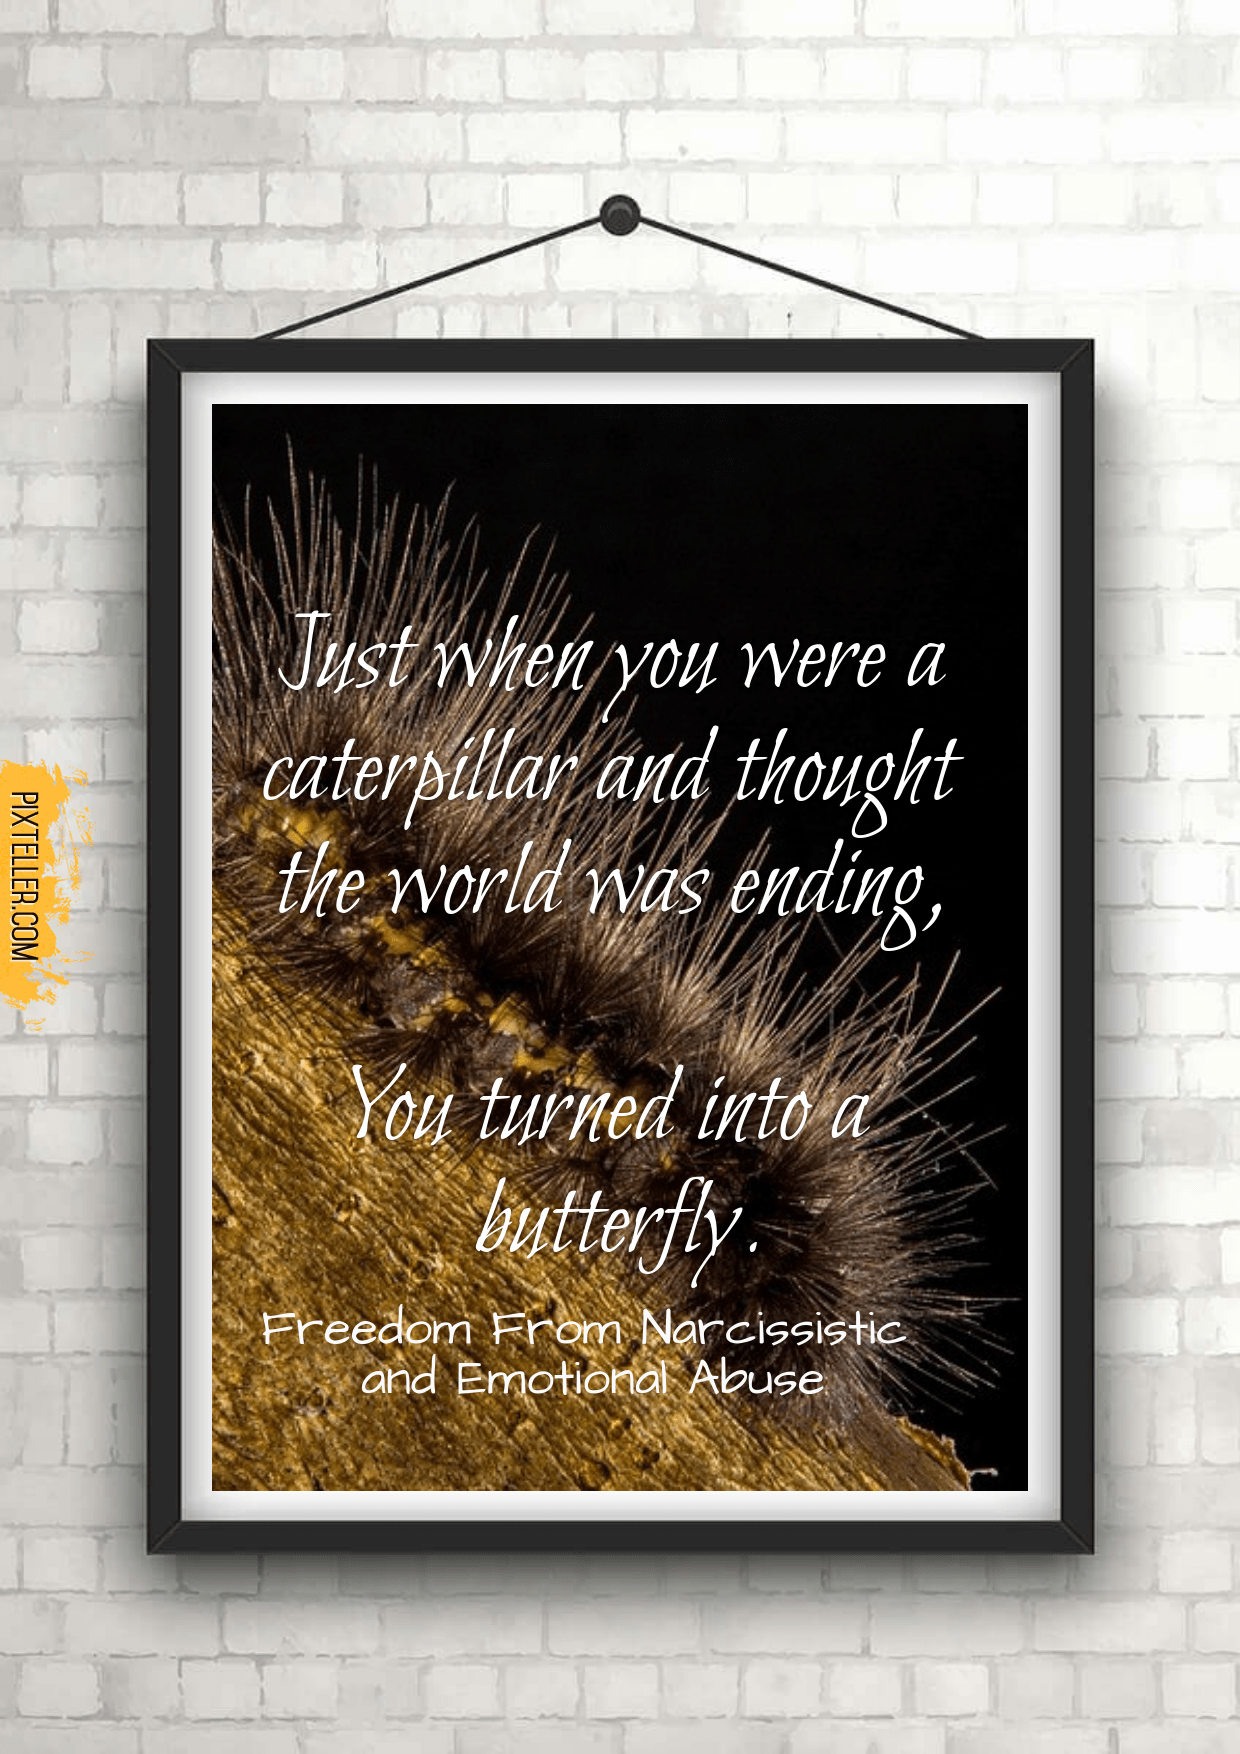 Text,                Picture,                Frame,                Poster,                Font,                Stock,                Photography,                Quote,                Mockup,                Inspiration,                Life,                Photo,                Image,                 Free Image